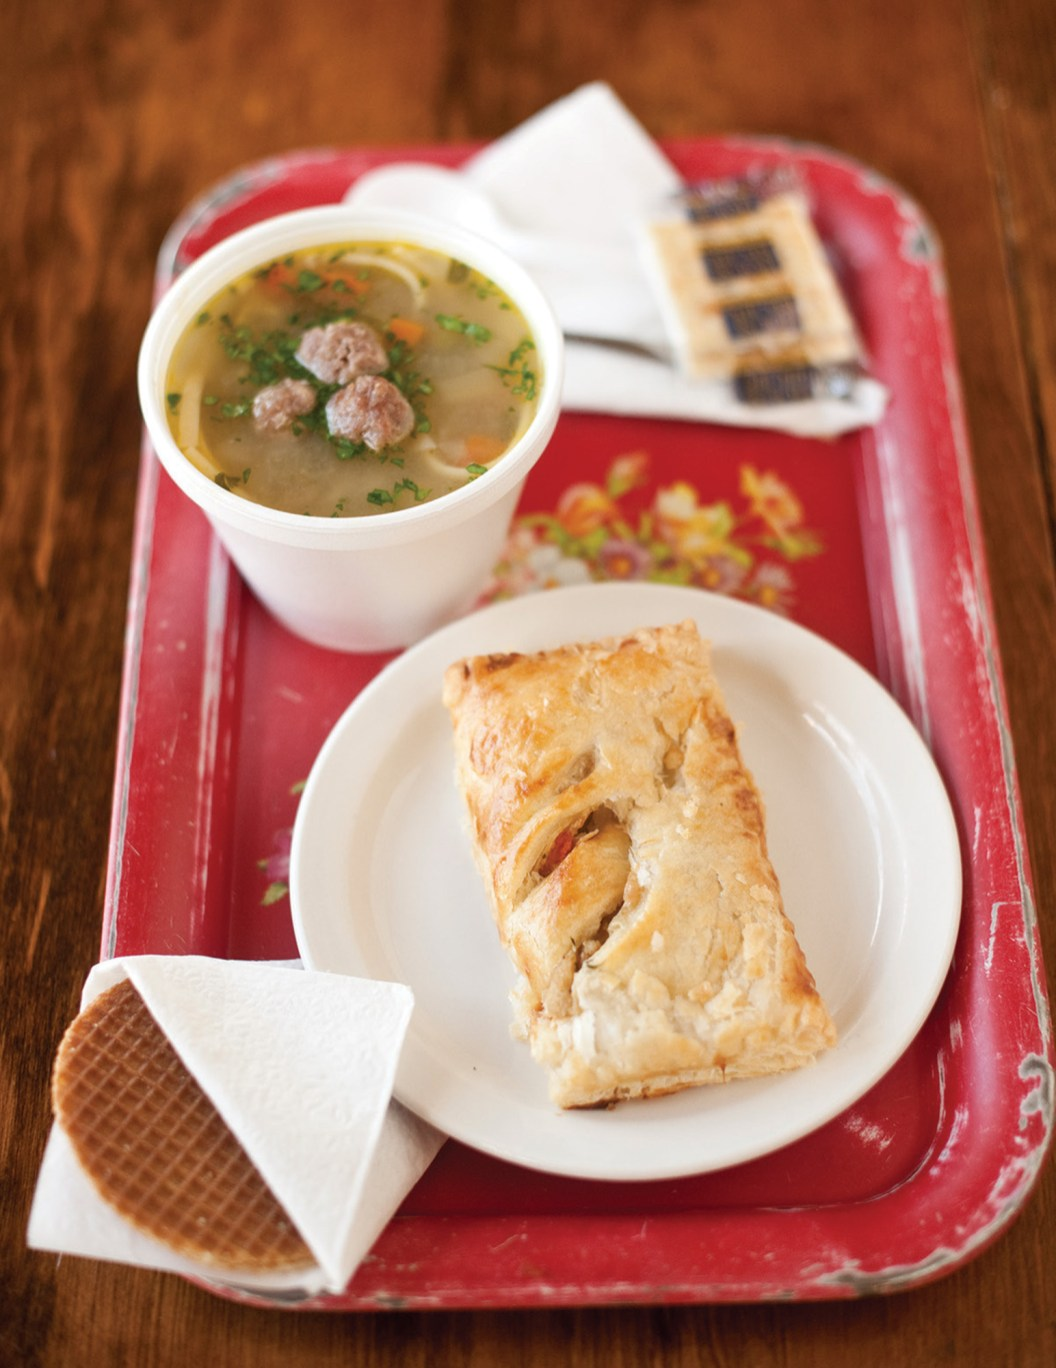 The $7.50 lunch special includes customer's choice of lunch pastry, a cup of soup, small drink and a caramel cookie waffle.